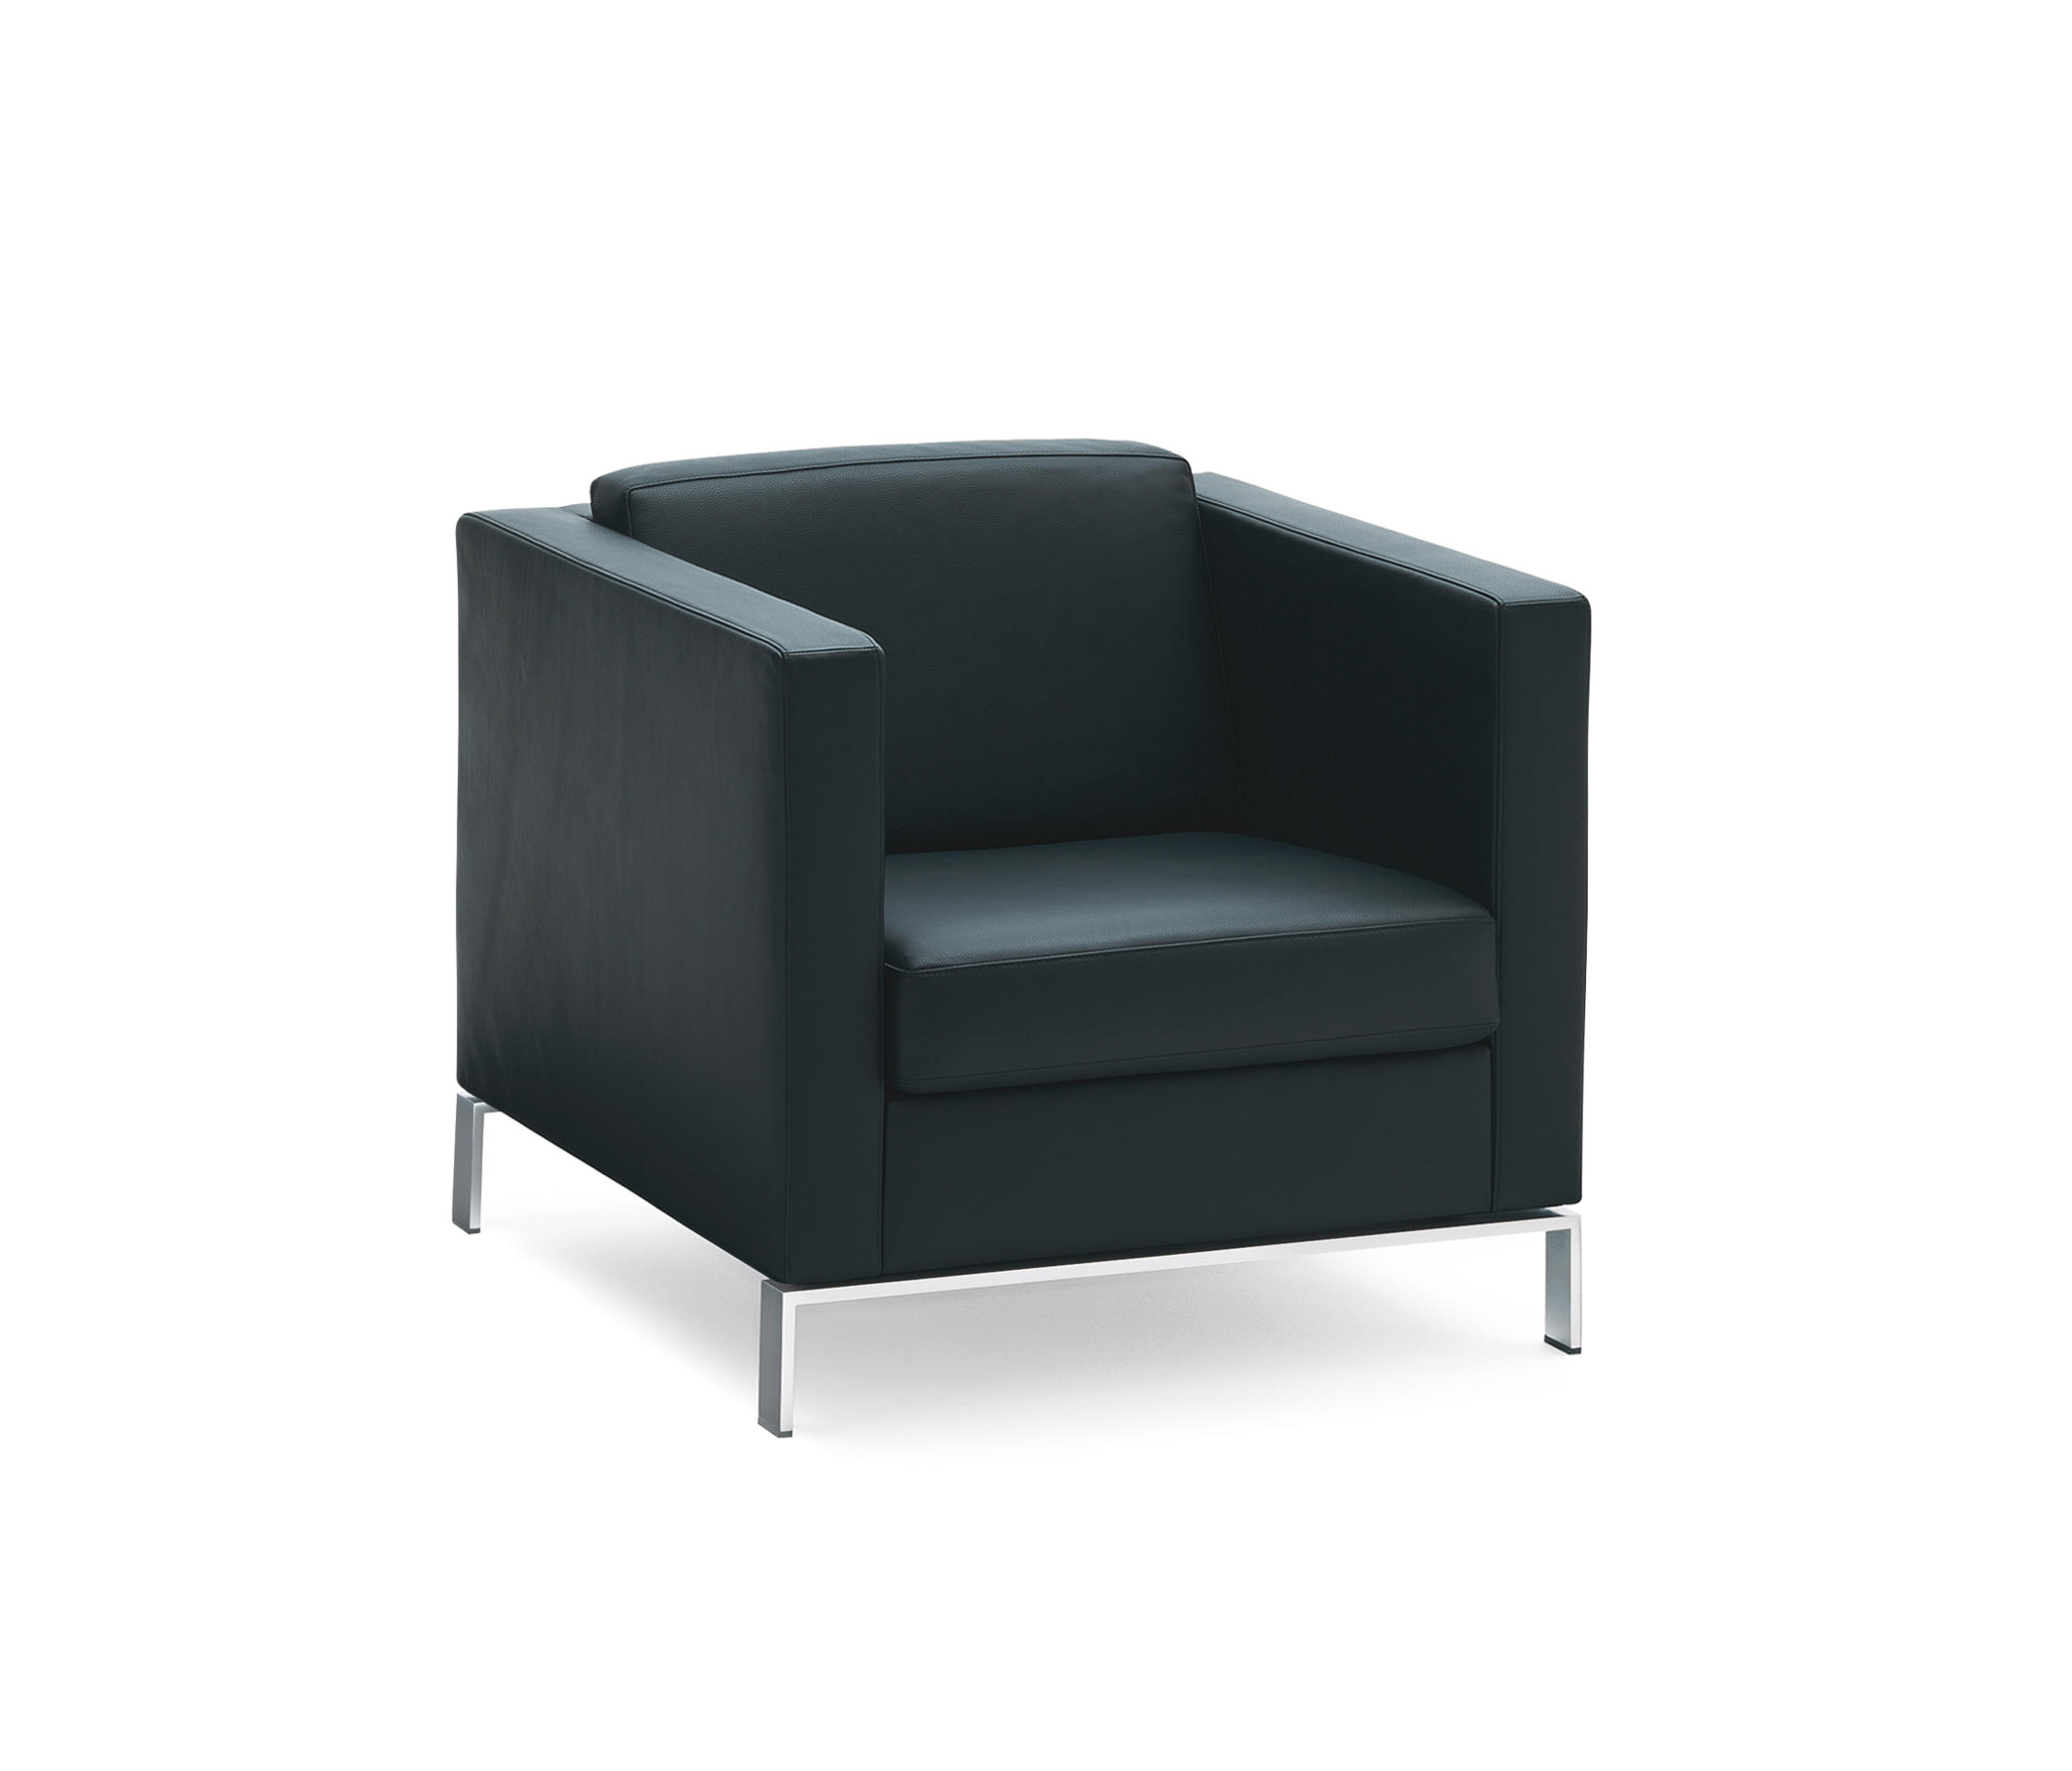 Walter Knoll Sessel Weiss Foster 500 Sessel Sessel Von Walter Knoll Architonic